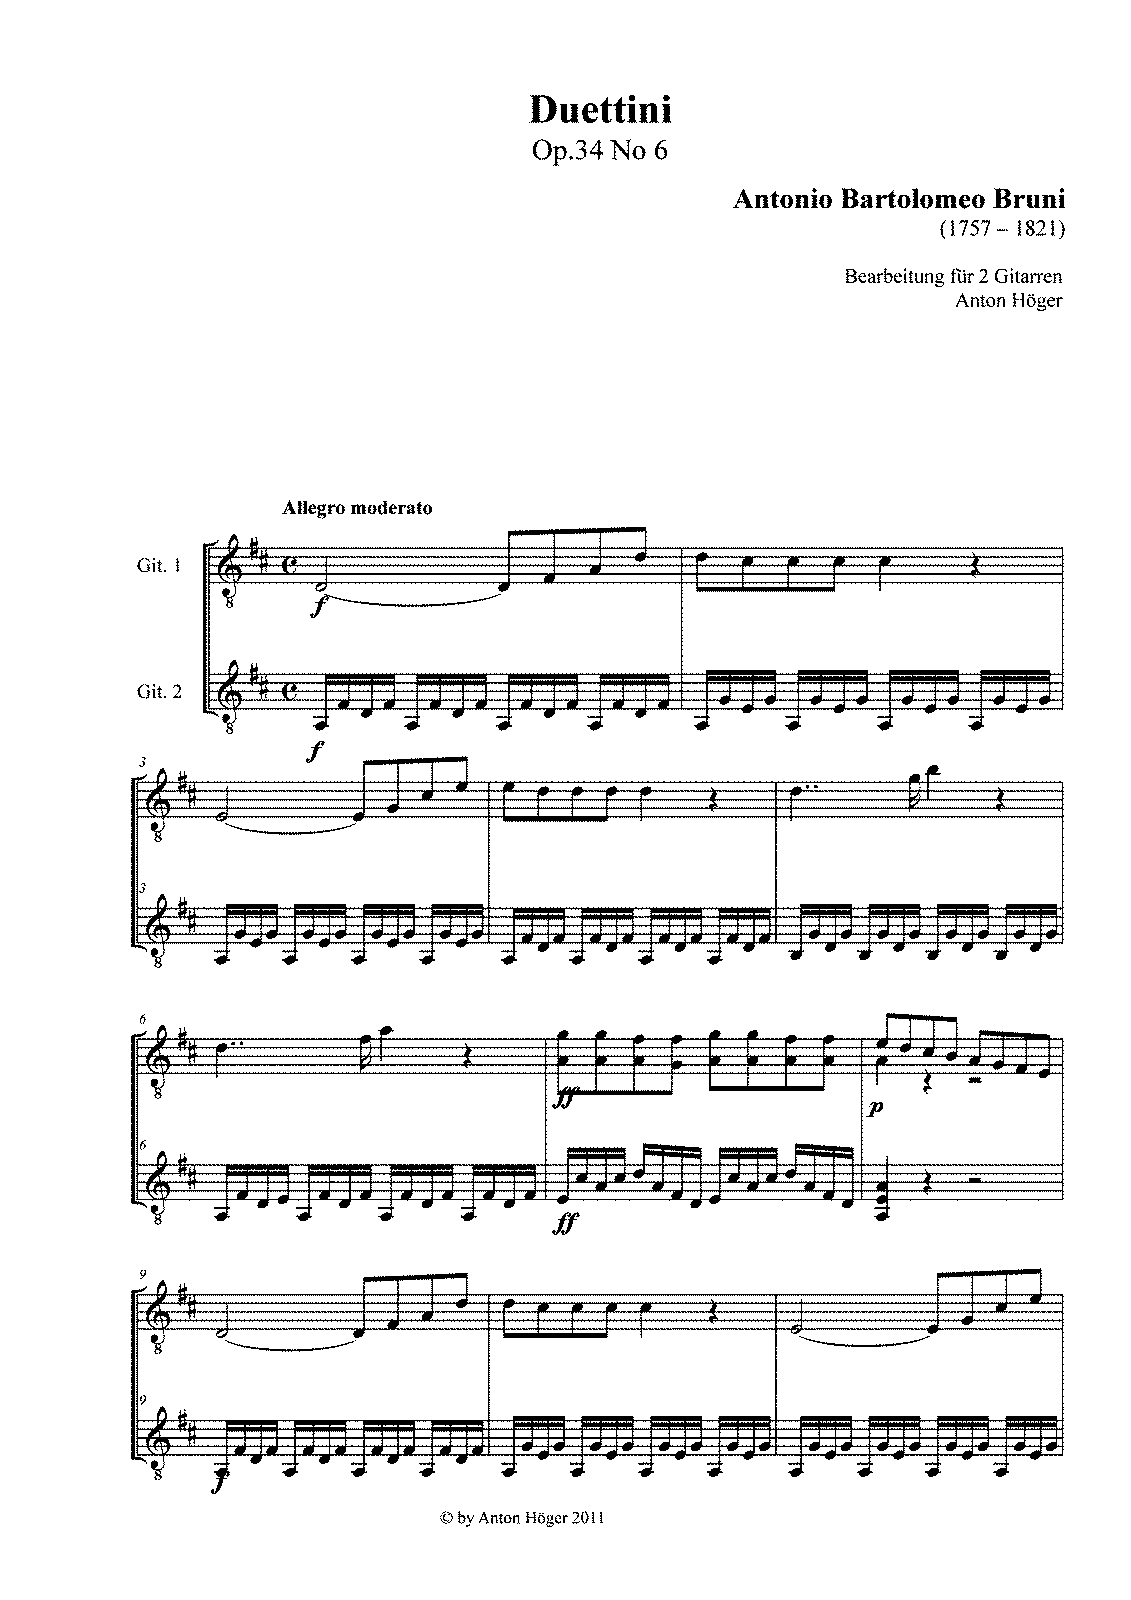 PMLP122884-Bruni, A.B. - Duettini Op.34 No6.pdf